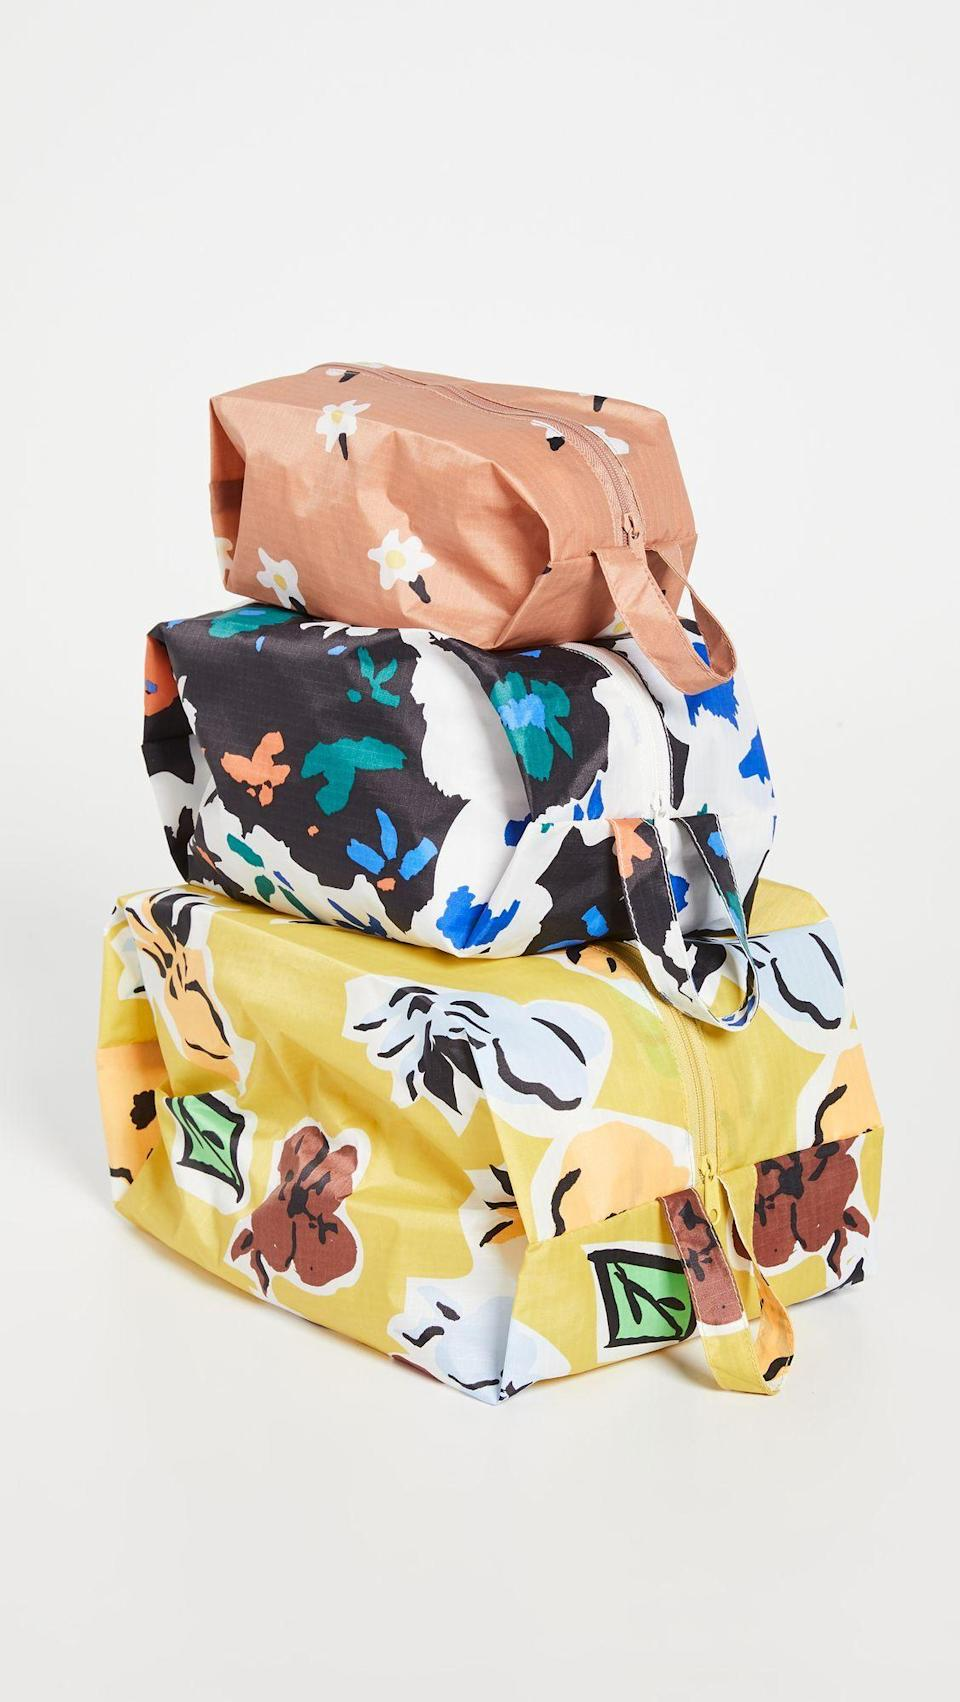 """<p><strong>Baggu</strong></p><p>shopbop.com</p><p><strong>$34.00</strong></p><p><a href=""""https://go.redirectingat.com?id=74968X1596630&url=https%3A%2F%2Fwww.shopbop.com%2Fzip-set-baggu%2Fvp%2Fv%3D1%2F1525889169.htm&sref=https%3A%2F%2Fwww.harpersbazaar.com%2Fbeauty%2Fmakeup%2Fg37004535%2Fbest-toiletry-bags%2F"""" rel=""""nofollow noopener"""" target=""""_blank"""" data-ylk=""""slk:Shop Now"""" class=""""link rapid-noclick-resp"""">Shop Now</a></p><p>The whole family is covered with this trio of adorably printed (and surprisingly durable) zip-up bags.</p>"""